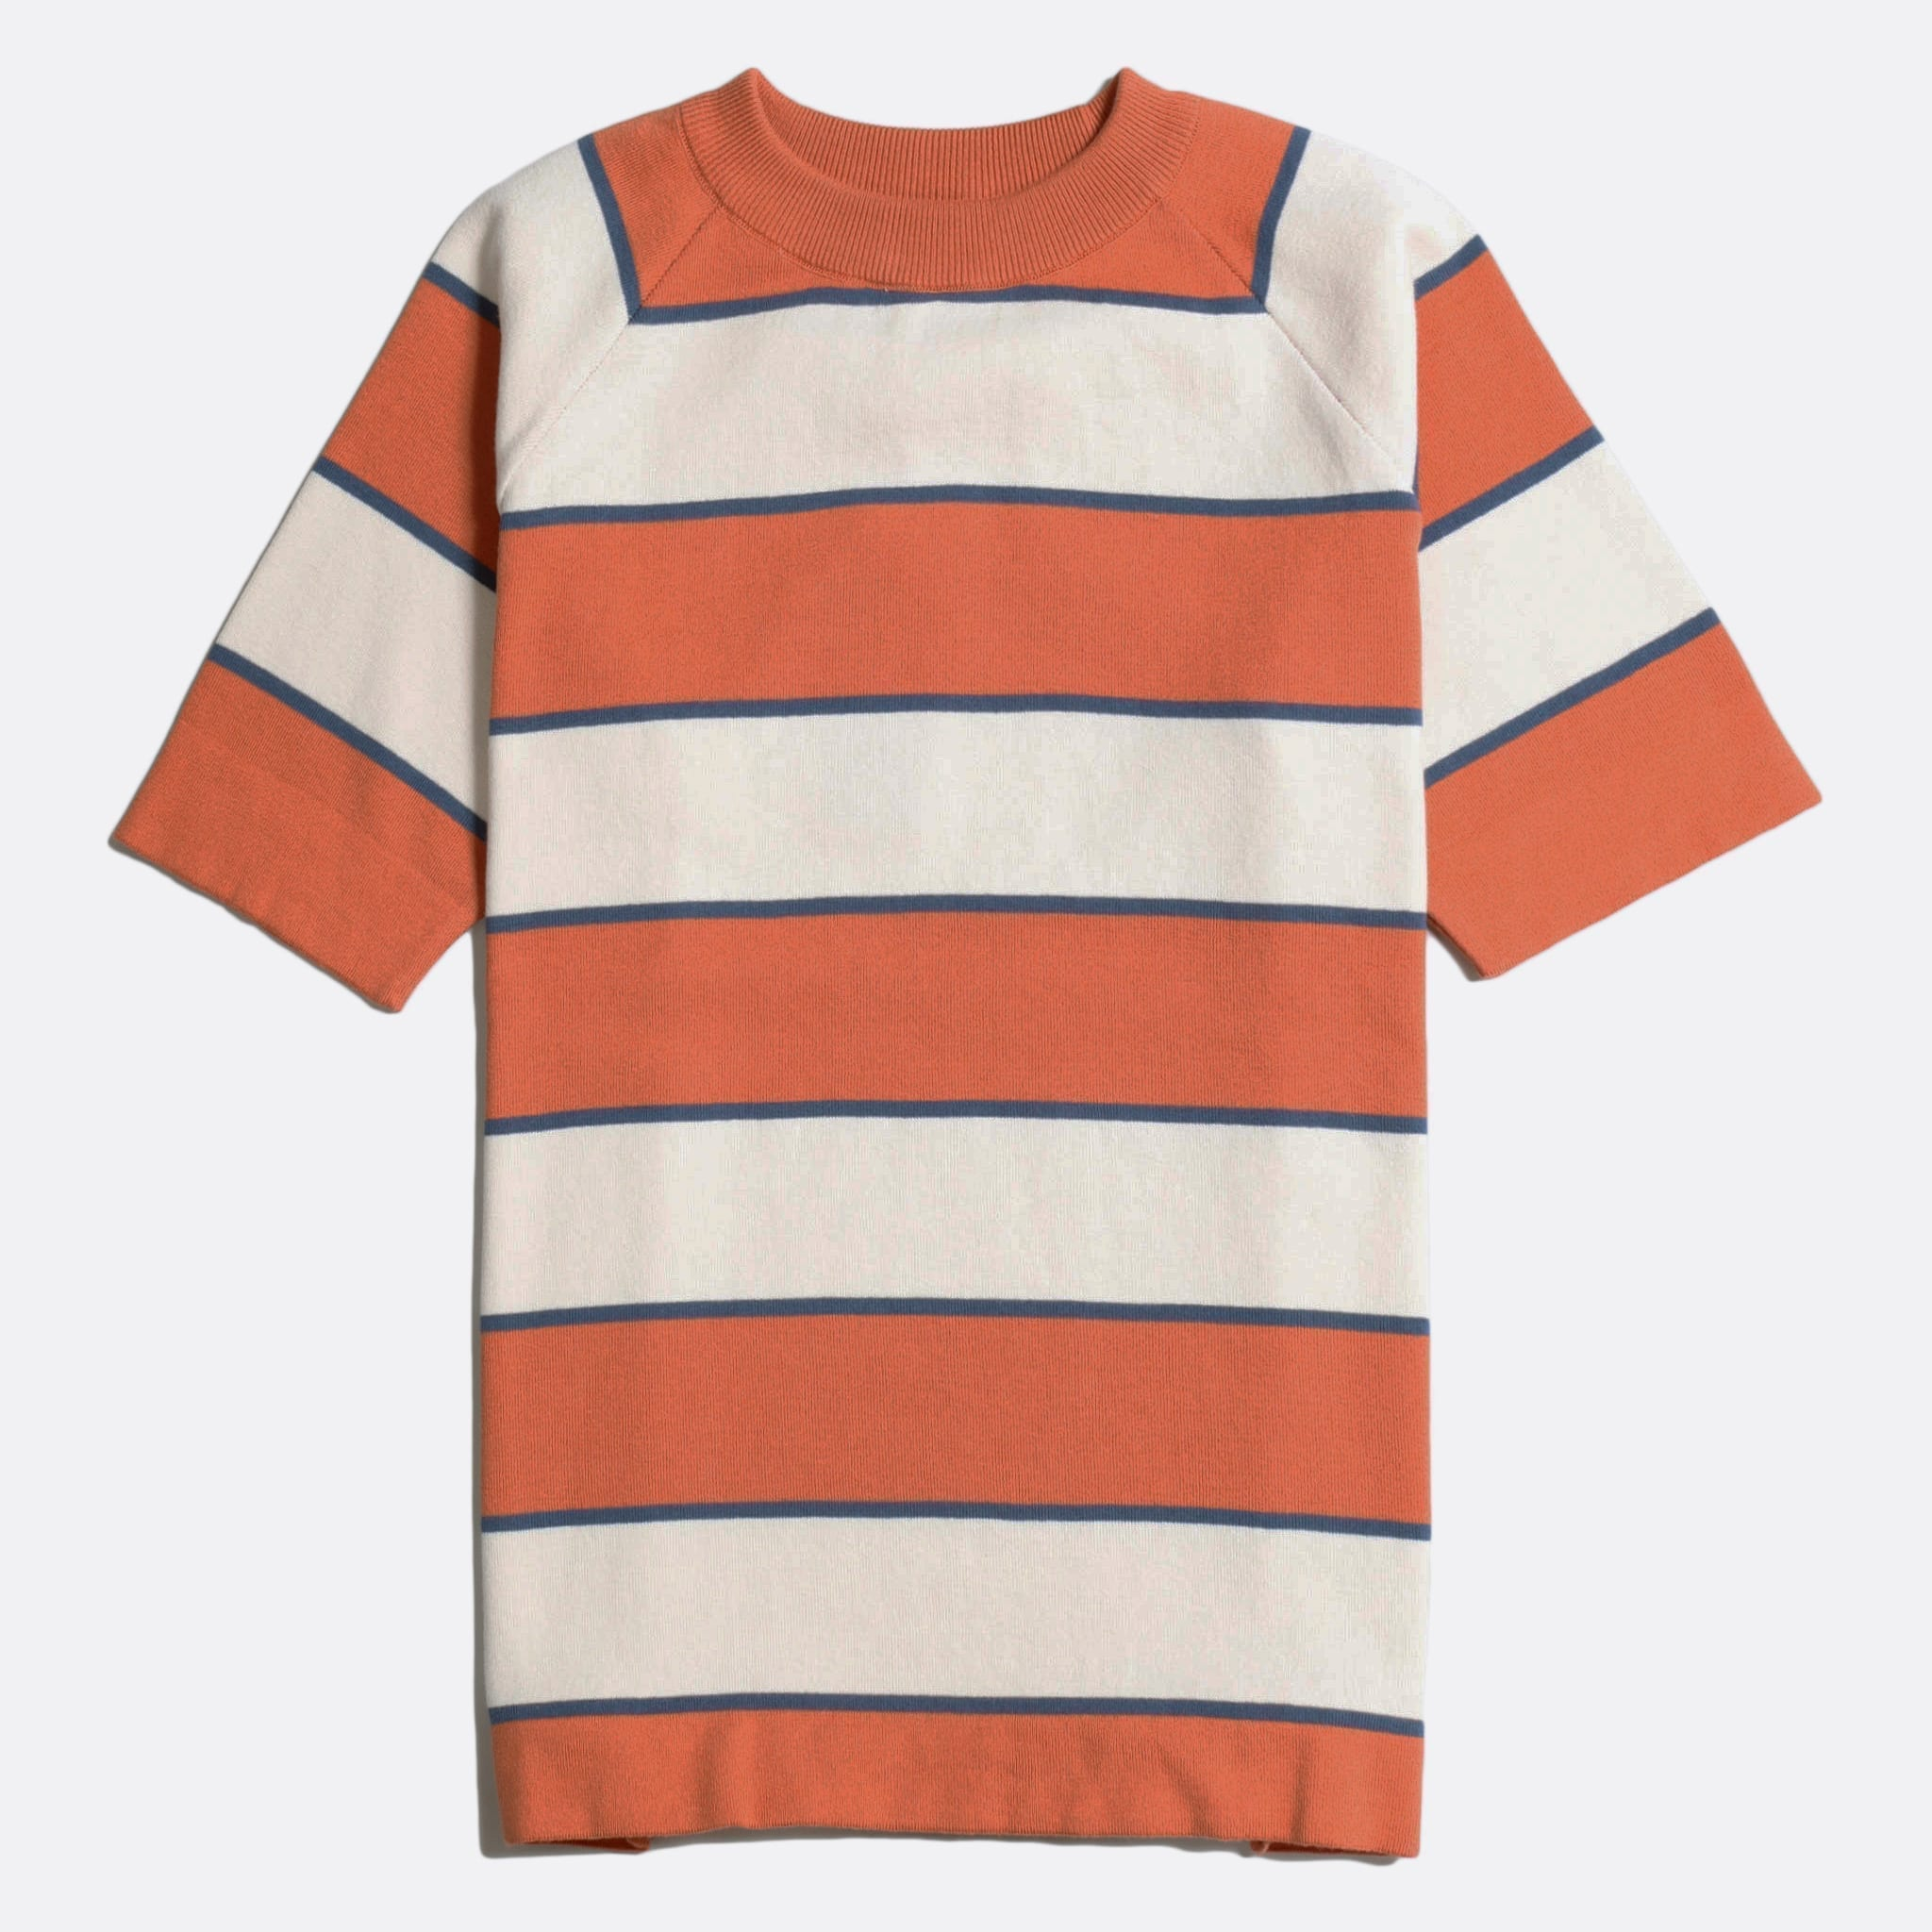 Far Afield Newport T-Shirt a Arabesque Orange/White Sand Organic Cotton Fabric Short Sleeve Mid Century Inspired